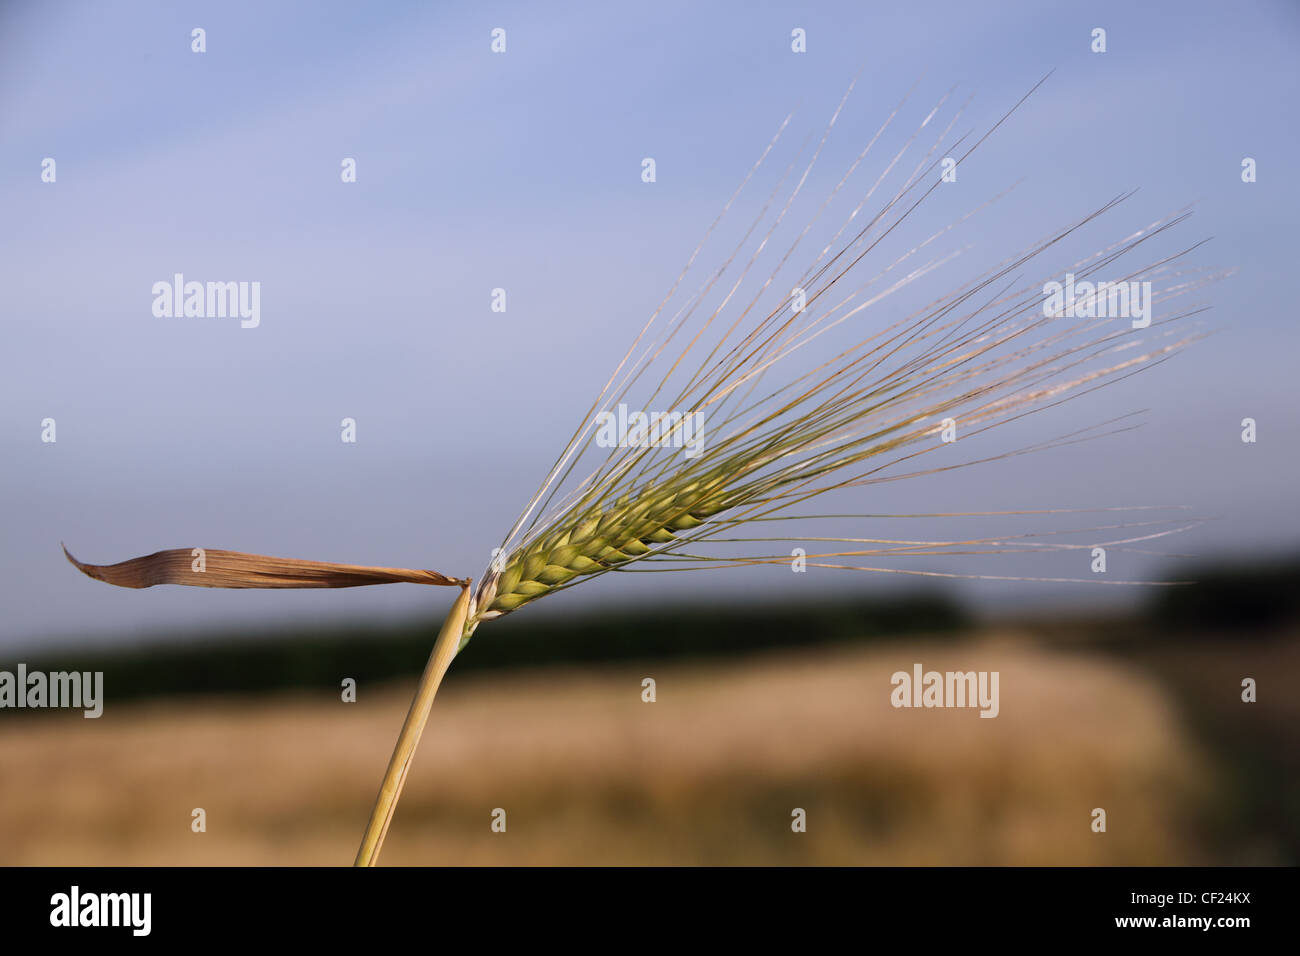 of,A,Single,ear,of,barley,(corn),isolated,from,a,field,summer,just,before,harvest.,Low,light,near,sunset,gotonysmith,f1.4,f1.8,f2.8,shallow,focus,blue,sky,sunset,warm,color,colours,near,harvest,time,thanksgiving,english,scottish,irish,gotonysmith,Buy Pictures of,Buy Images Of